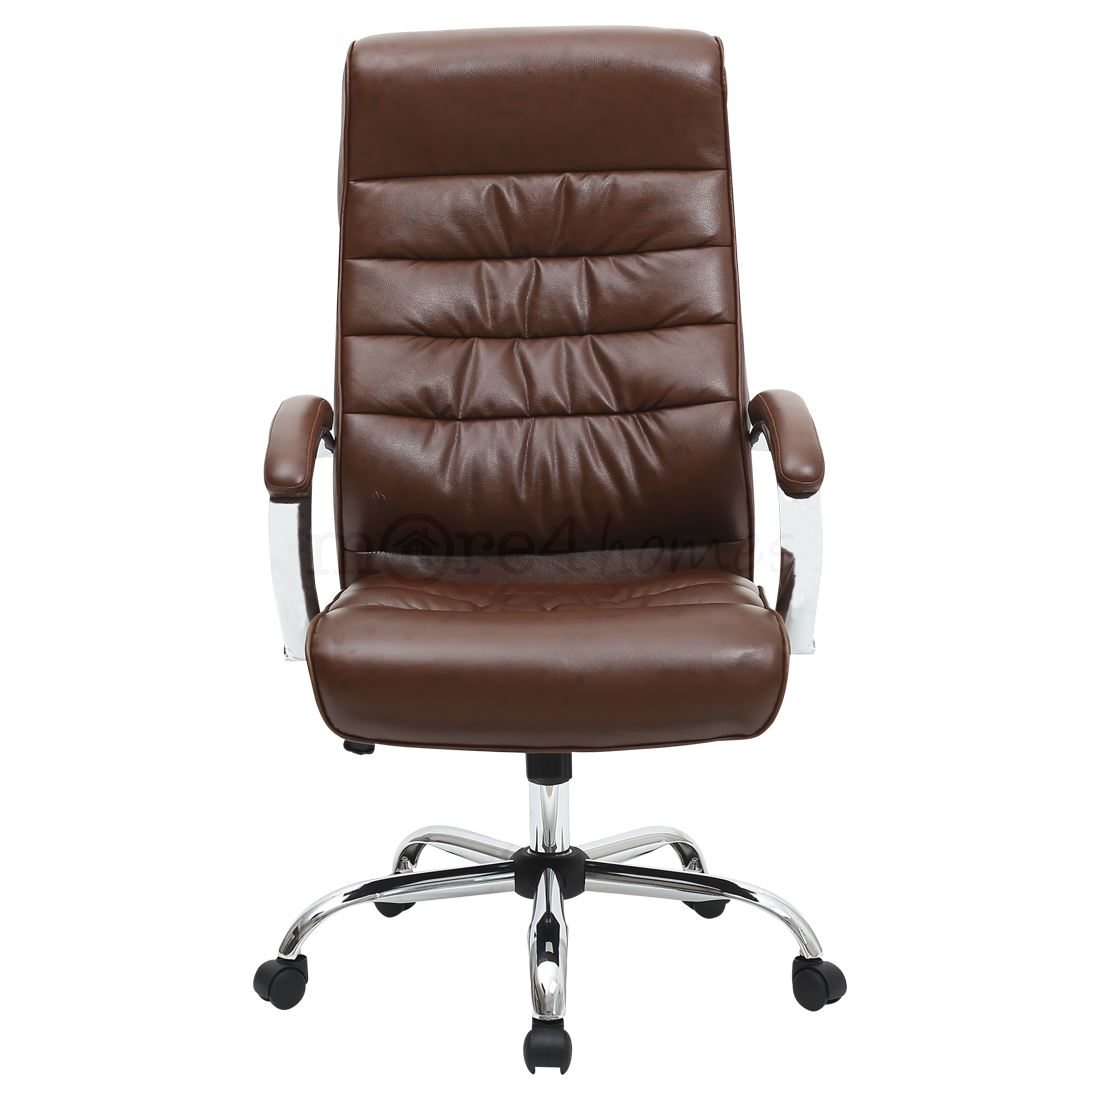 office chair posture tips high back patio cushions clearance mexico premium executive leather